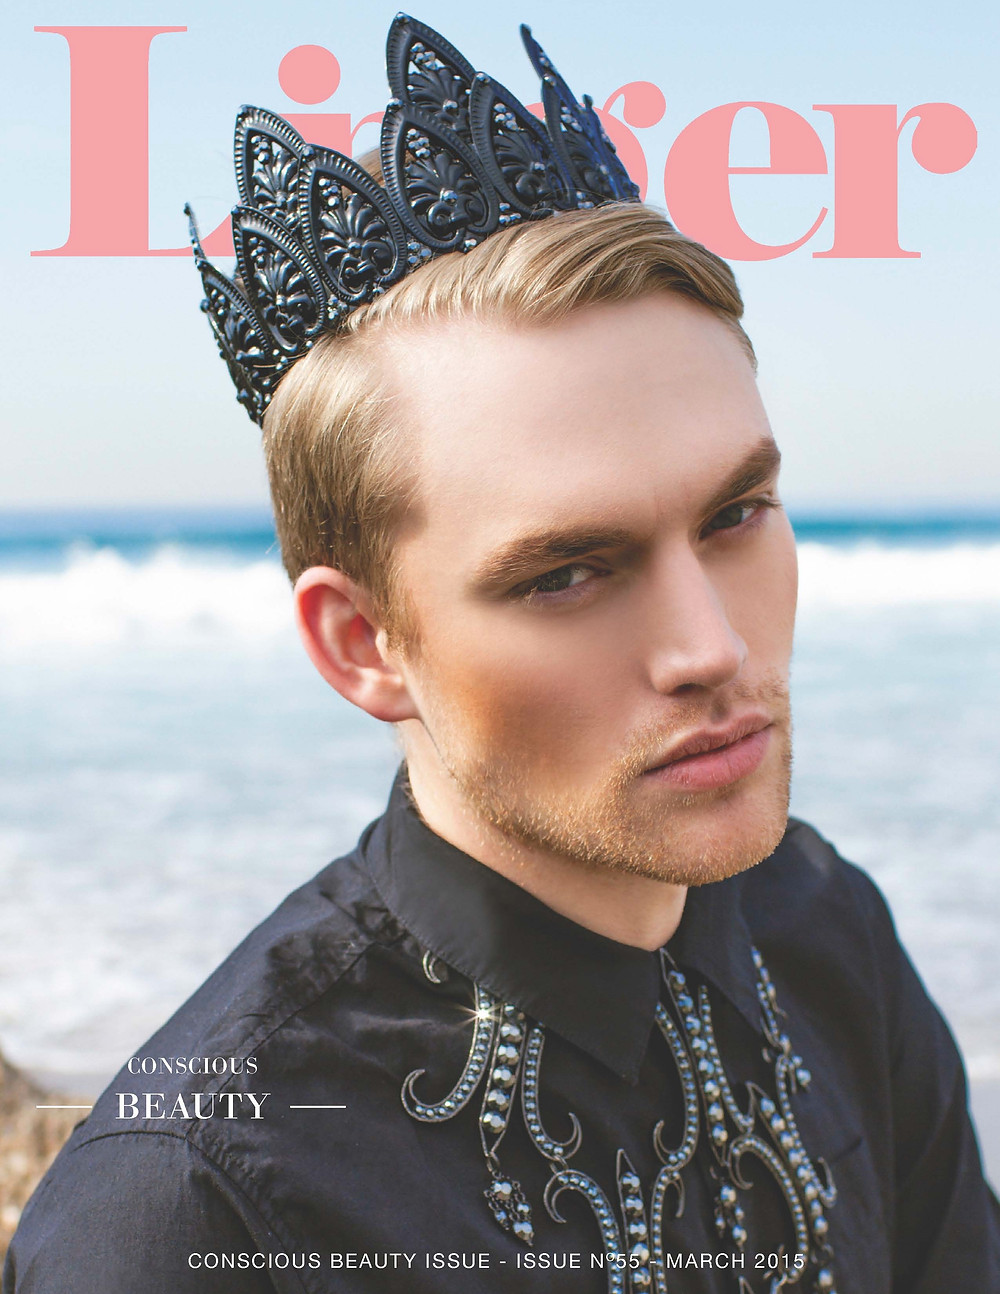 LingerMagazine.com Print Issue Cover of Male Model with Black Crown